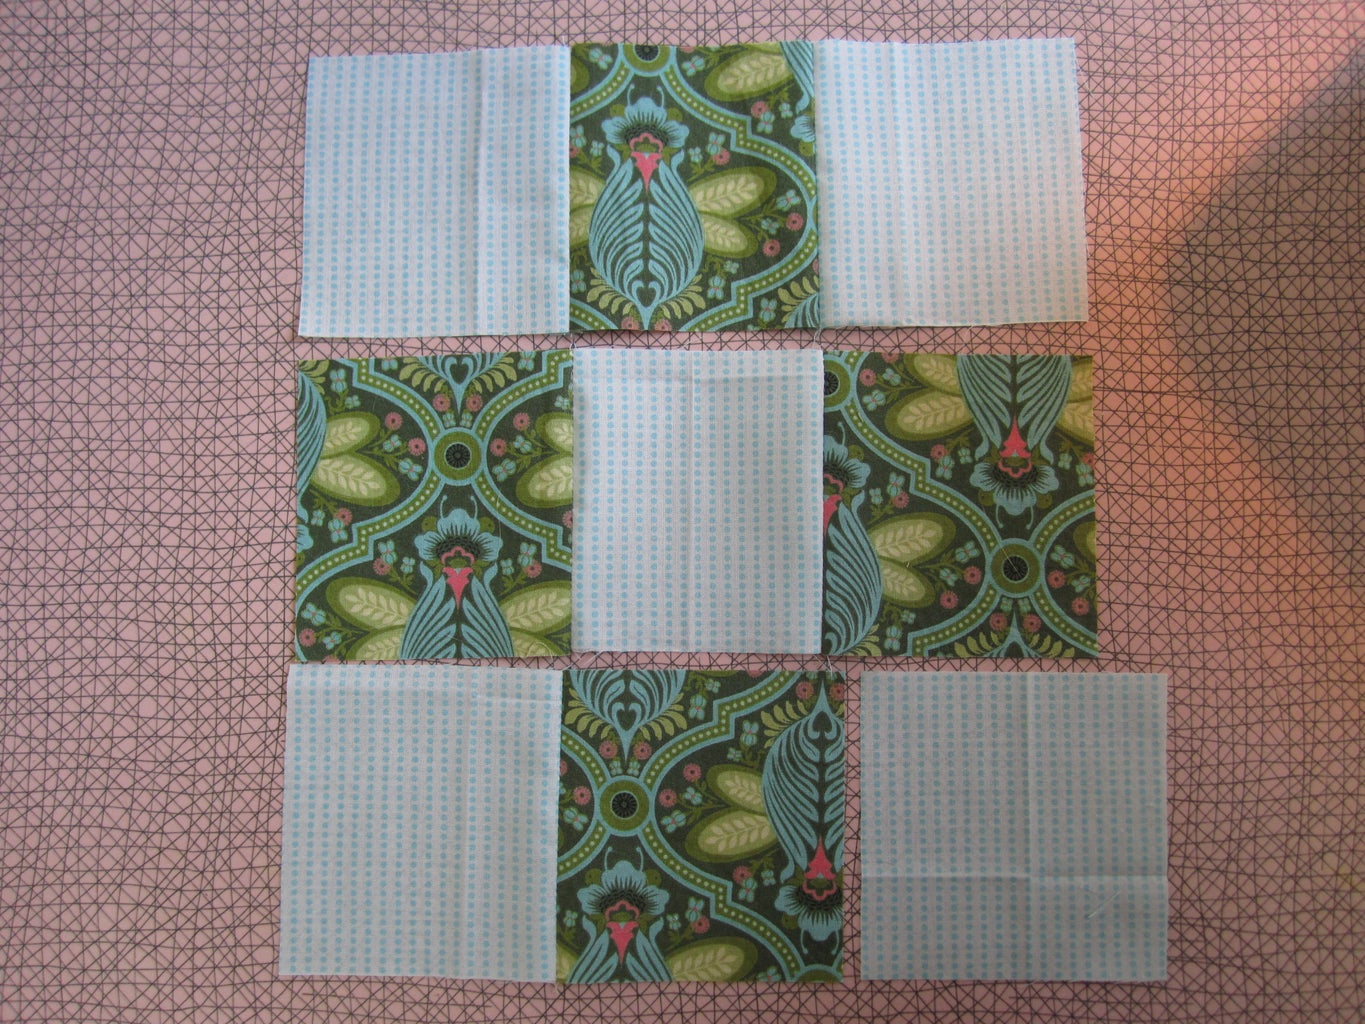 Assembling & Sewing the Squares Into a Block.